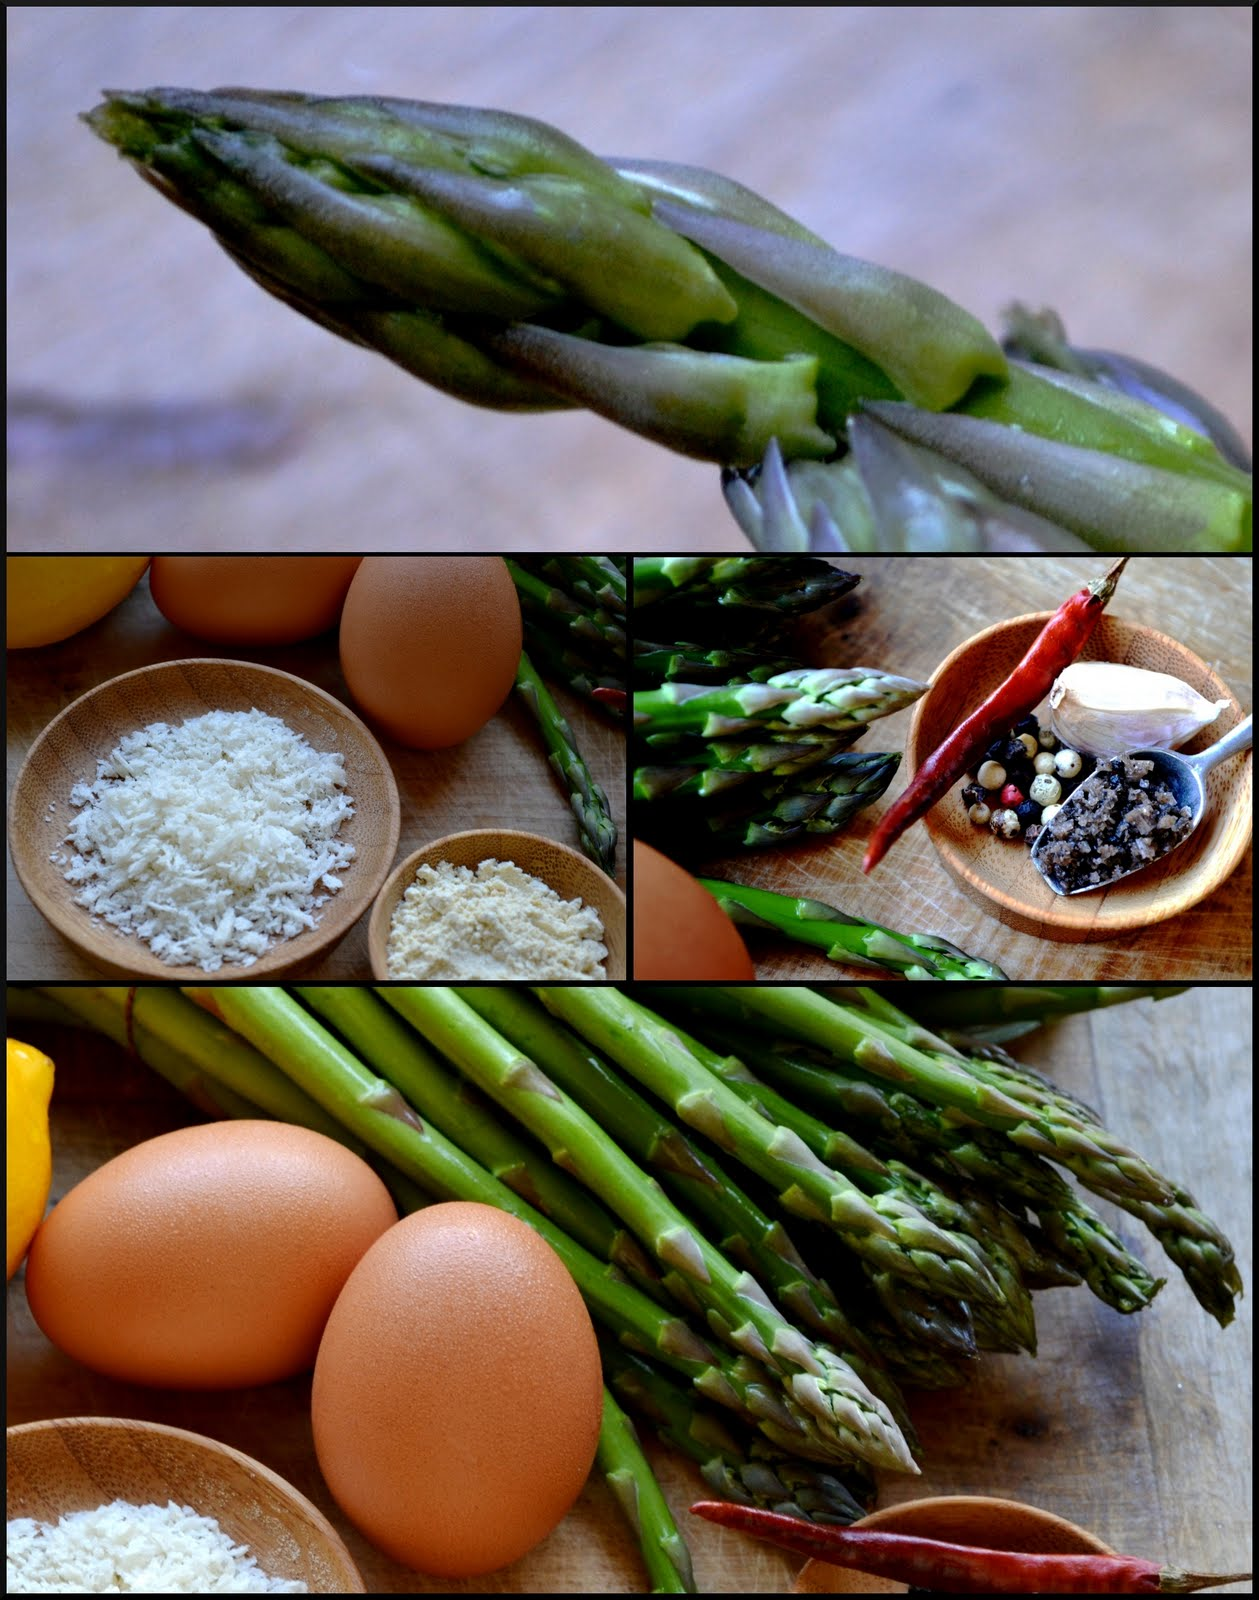 The Ardent Epicure: What's on the side? Baked Asparagus Fries